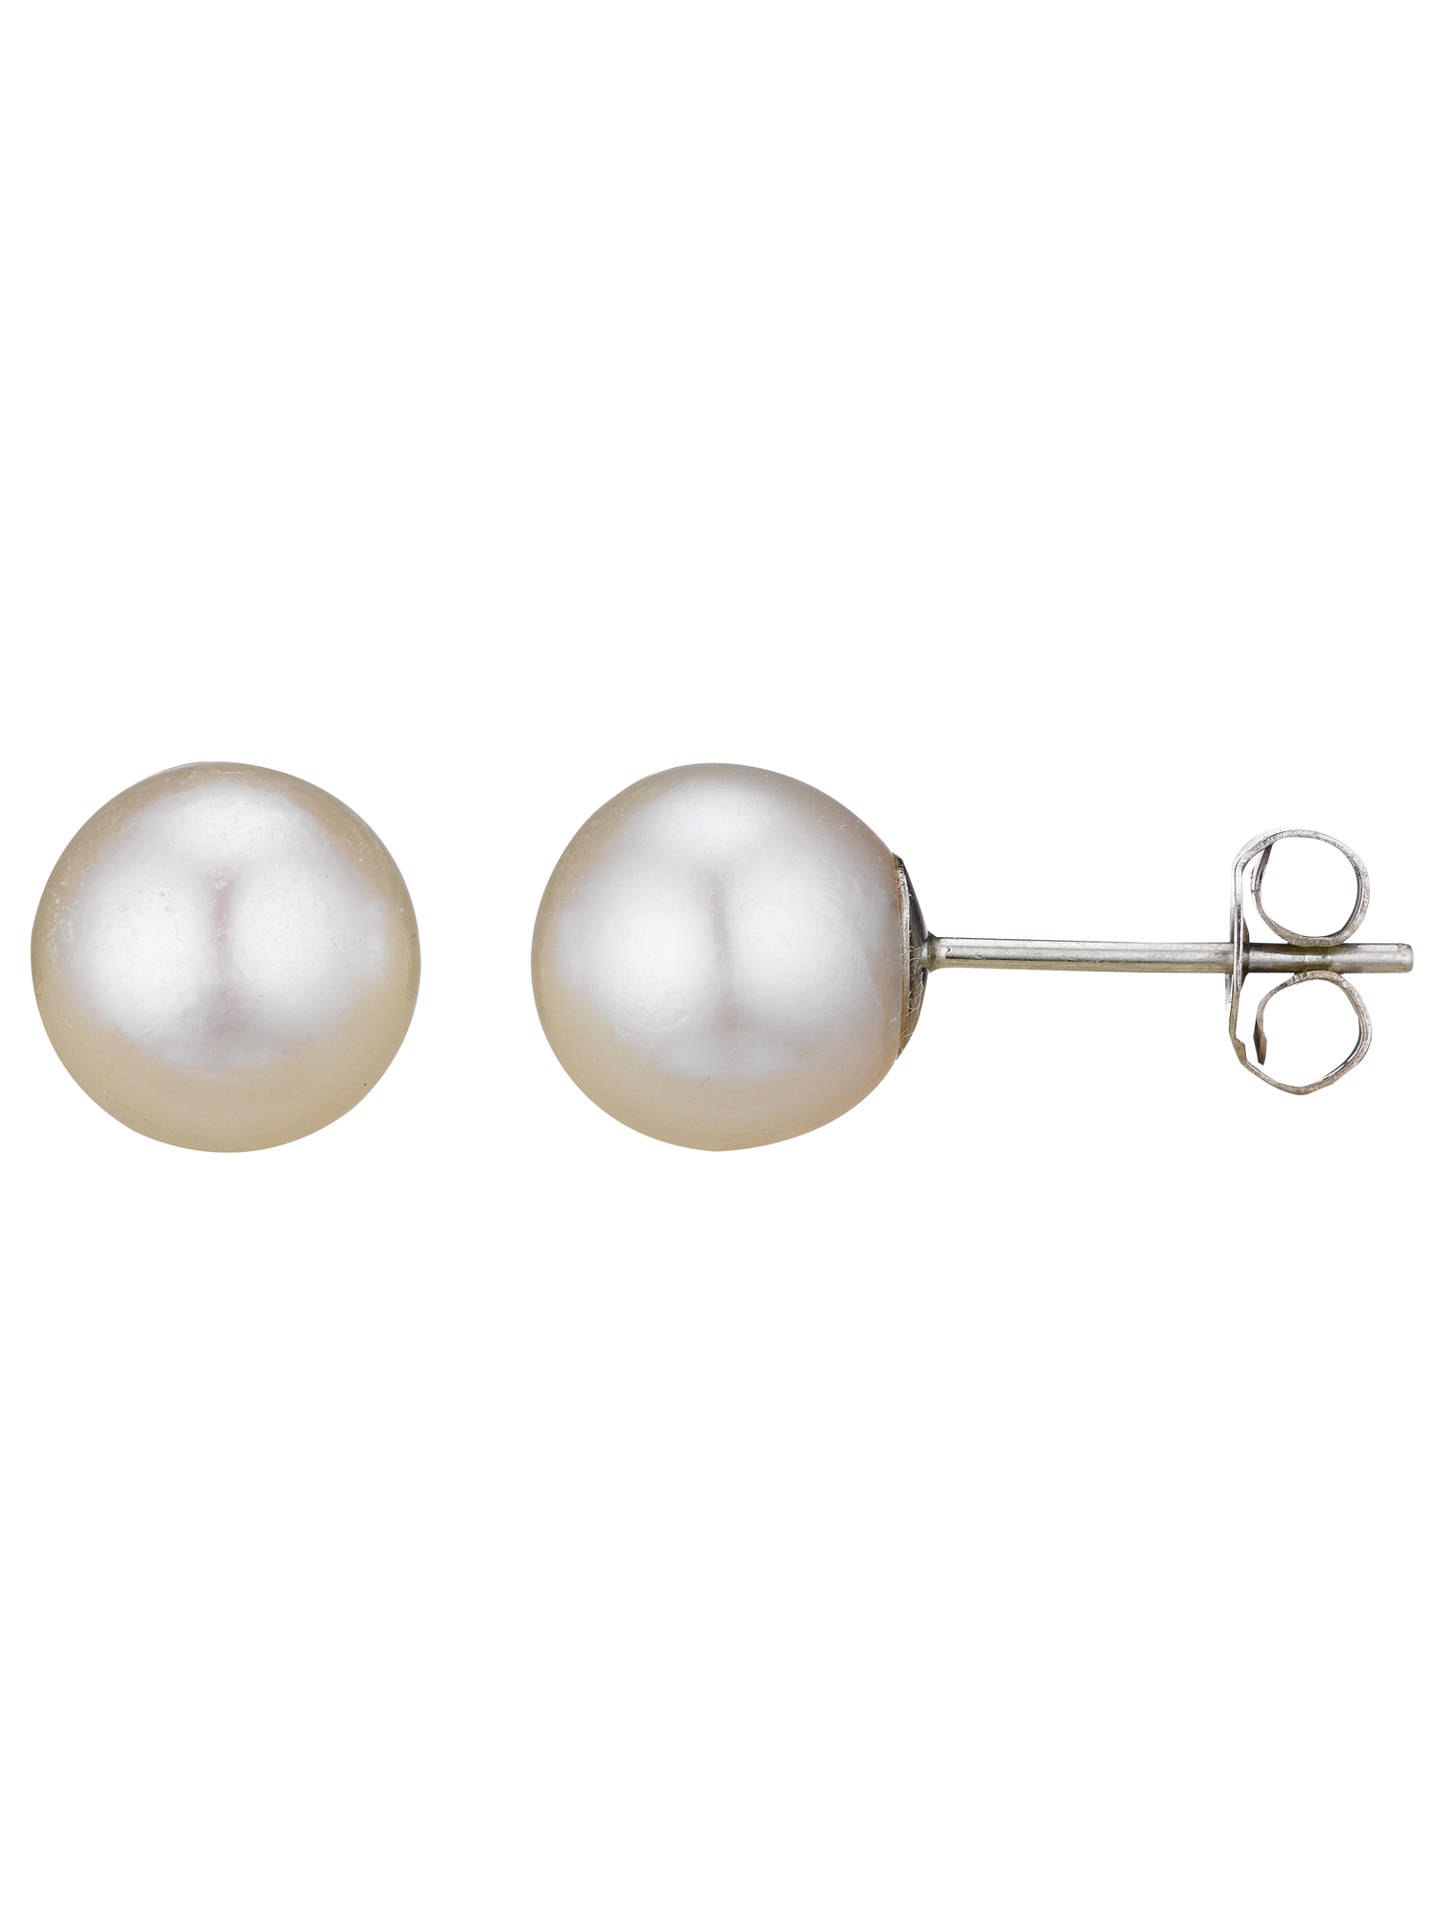 A B Davis 18ct White Gold Round Pearl Stud Earrings